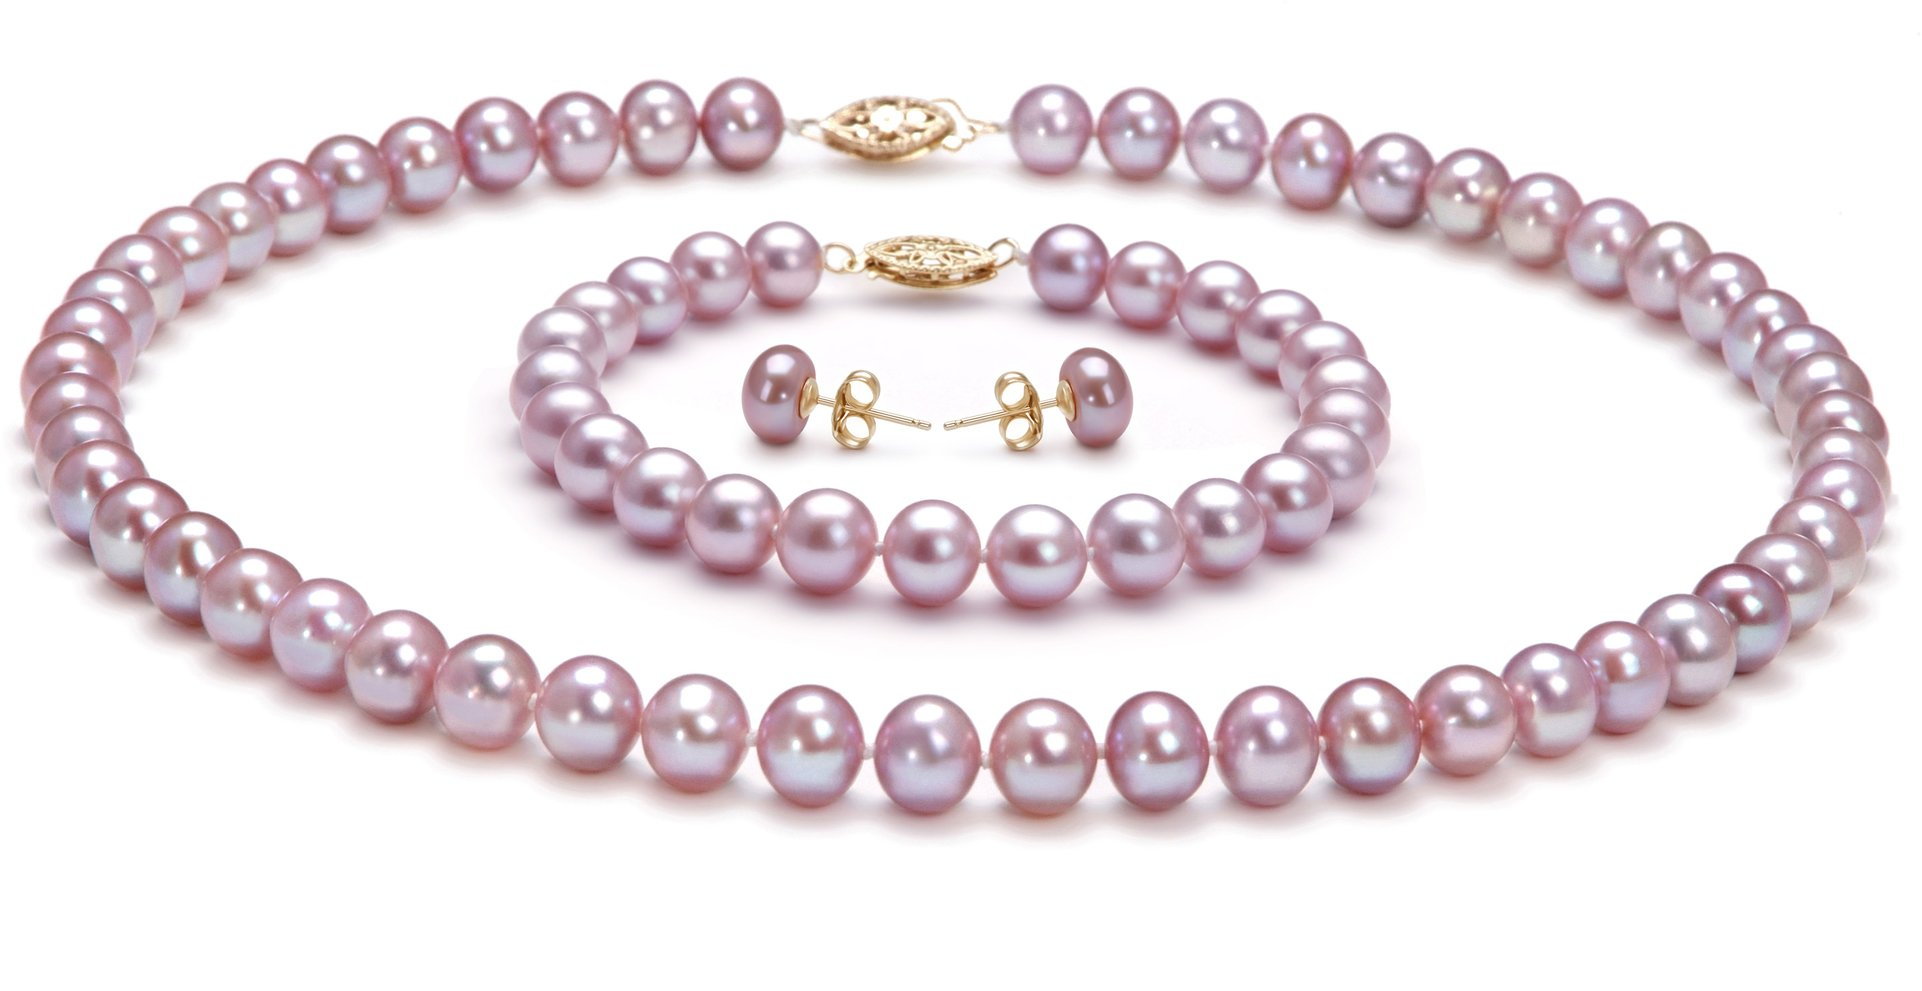 PearlsOnly - Lavender 7-8mm AA Quality Freshwater Cultured Pearl Set-16 in Chocker length